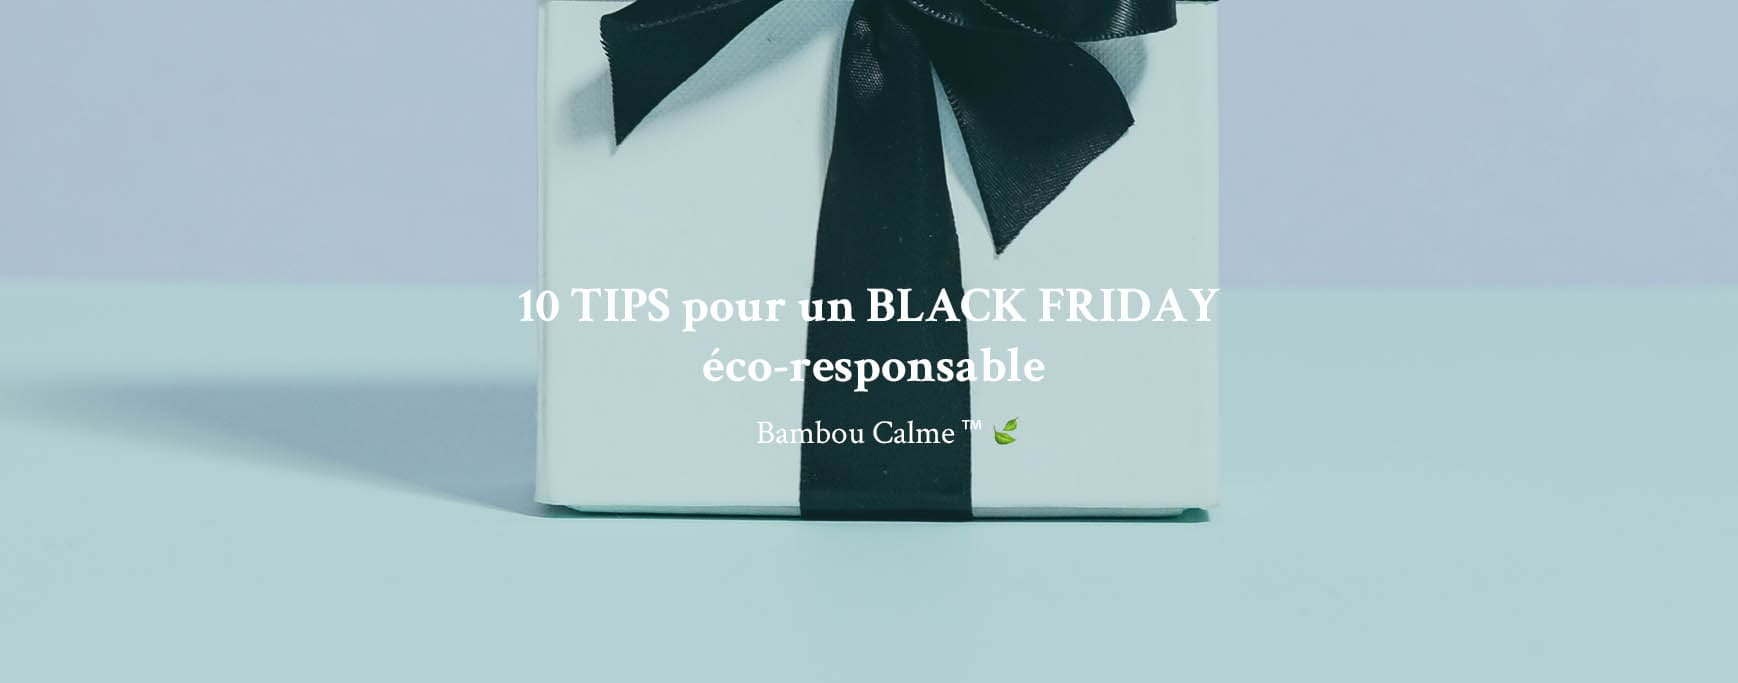 10 TIPS pour un BLACK FRIDAY éco-responsable